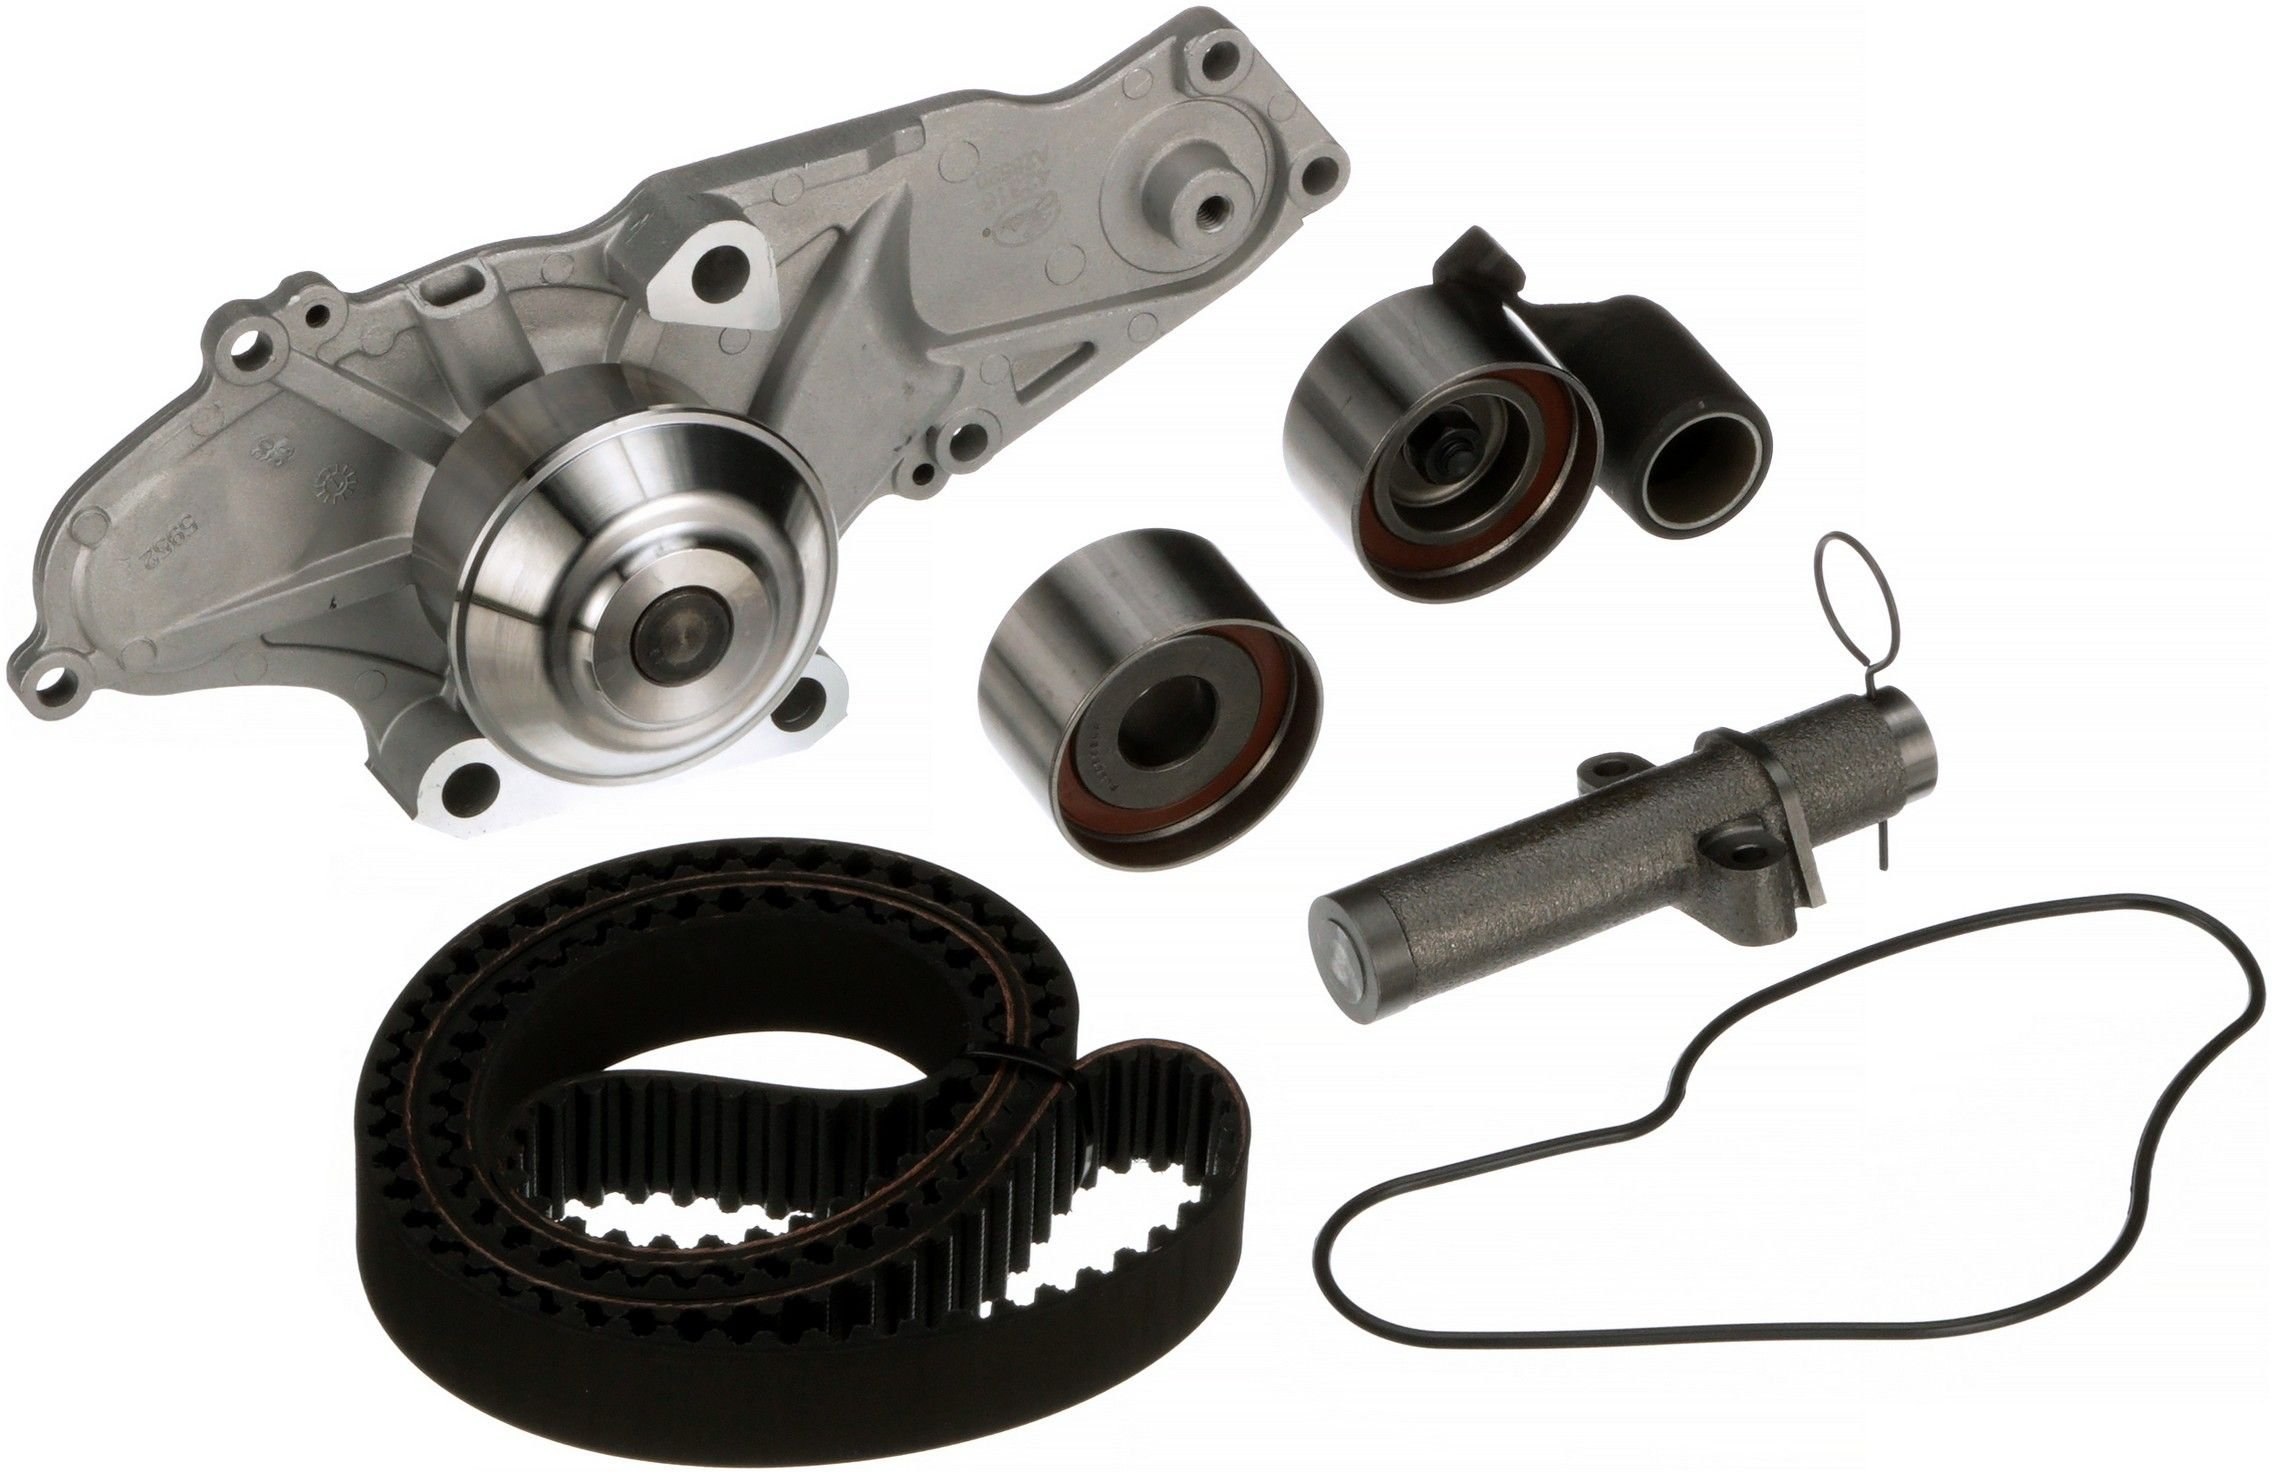 2003 Acura TL Engine Timing Belt Kit with Water Pump 6 Cyl 3.2L (Gates  TCKWP286) Interference engine application .